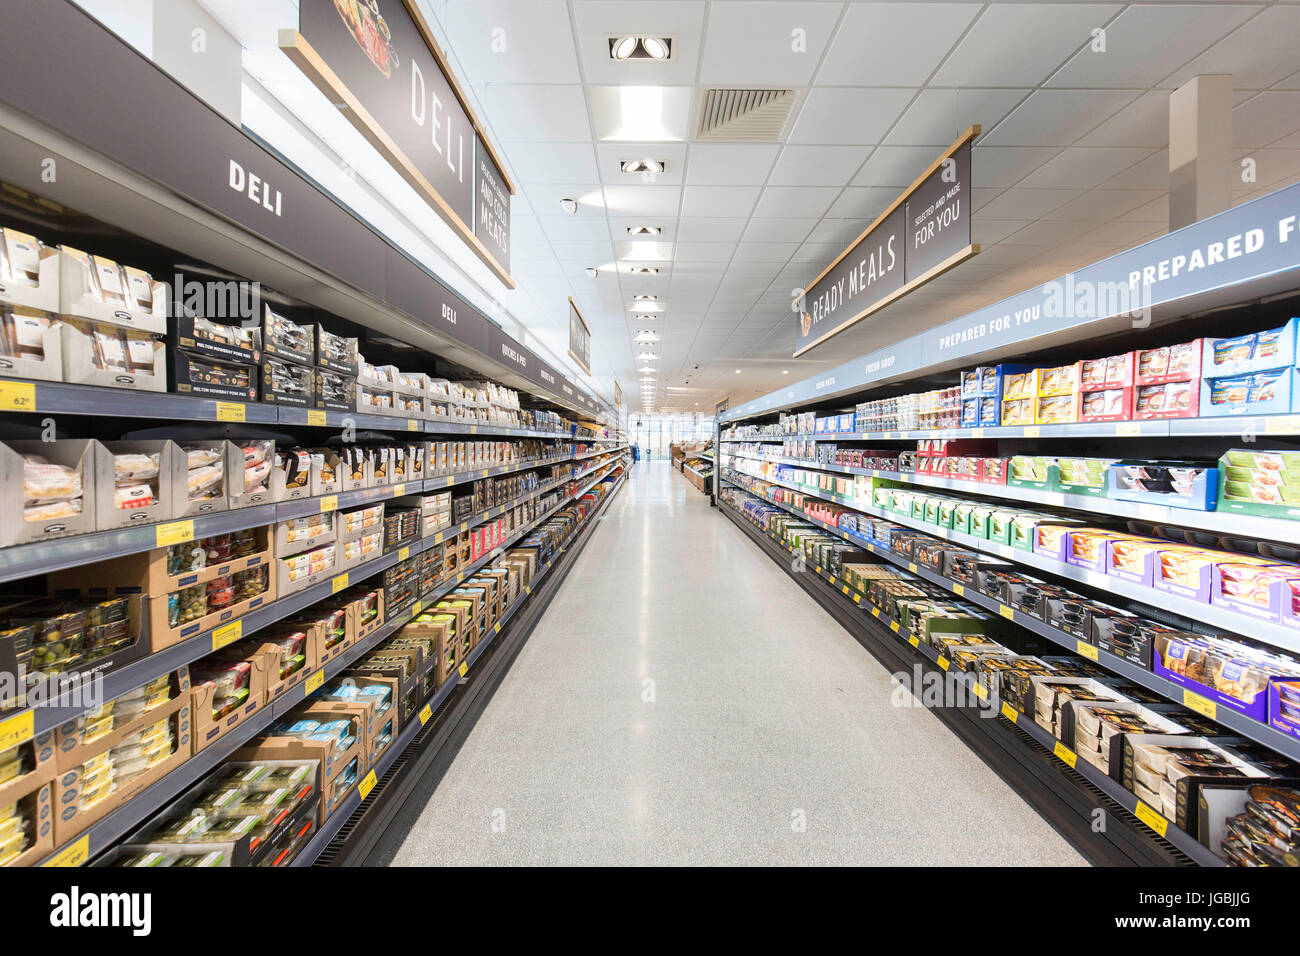 Interior pictures of an Aldi supermarket - Stock Image